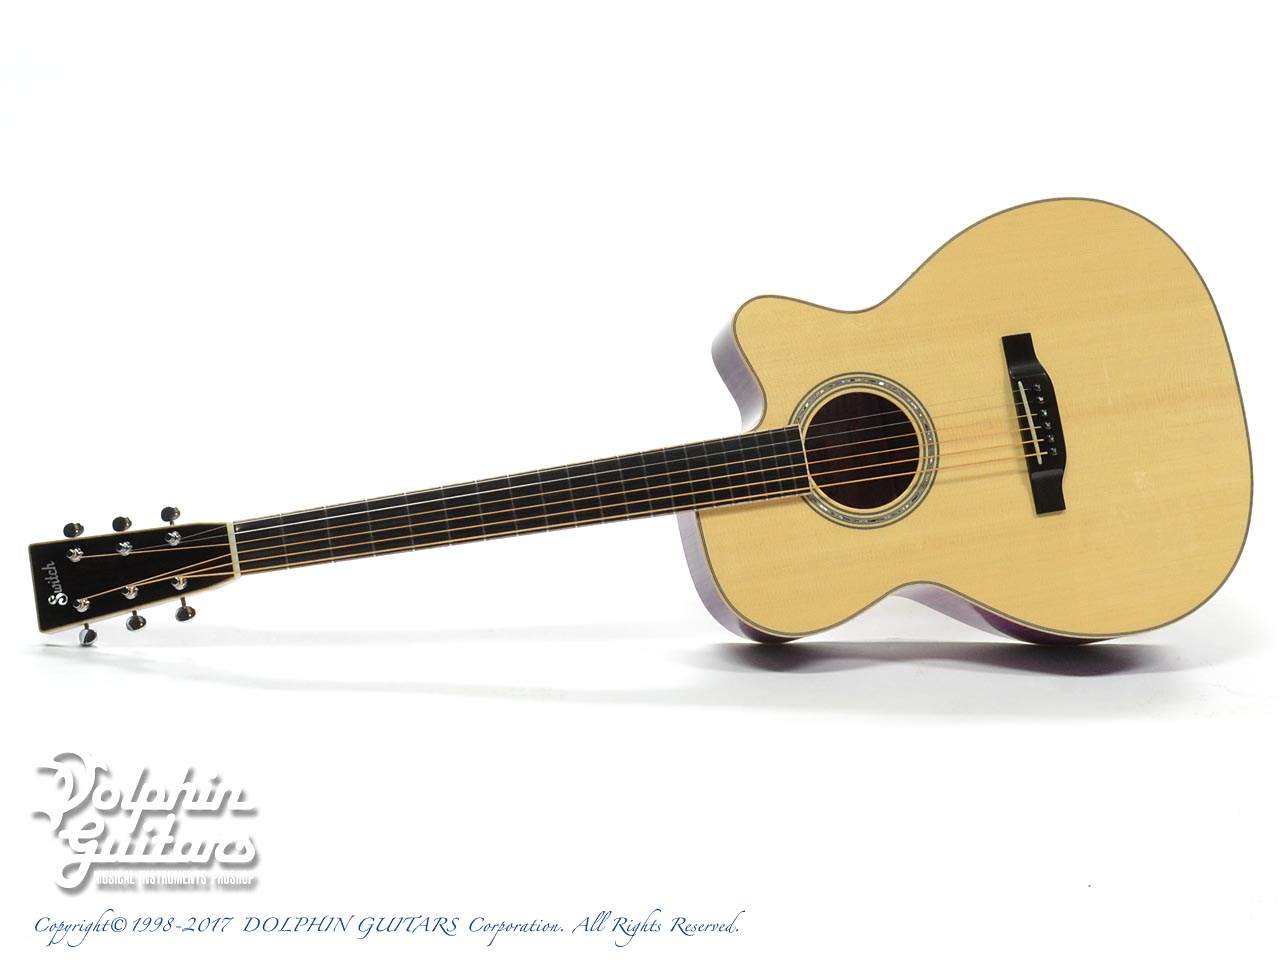 SWITCH: SCOM-3C E-FM (Engelmann Spruce & Flame Maple) (Murasakishikibu) (0)